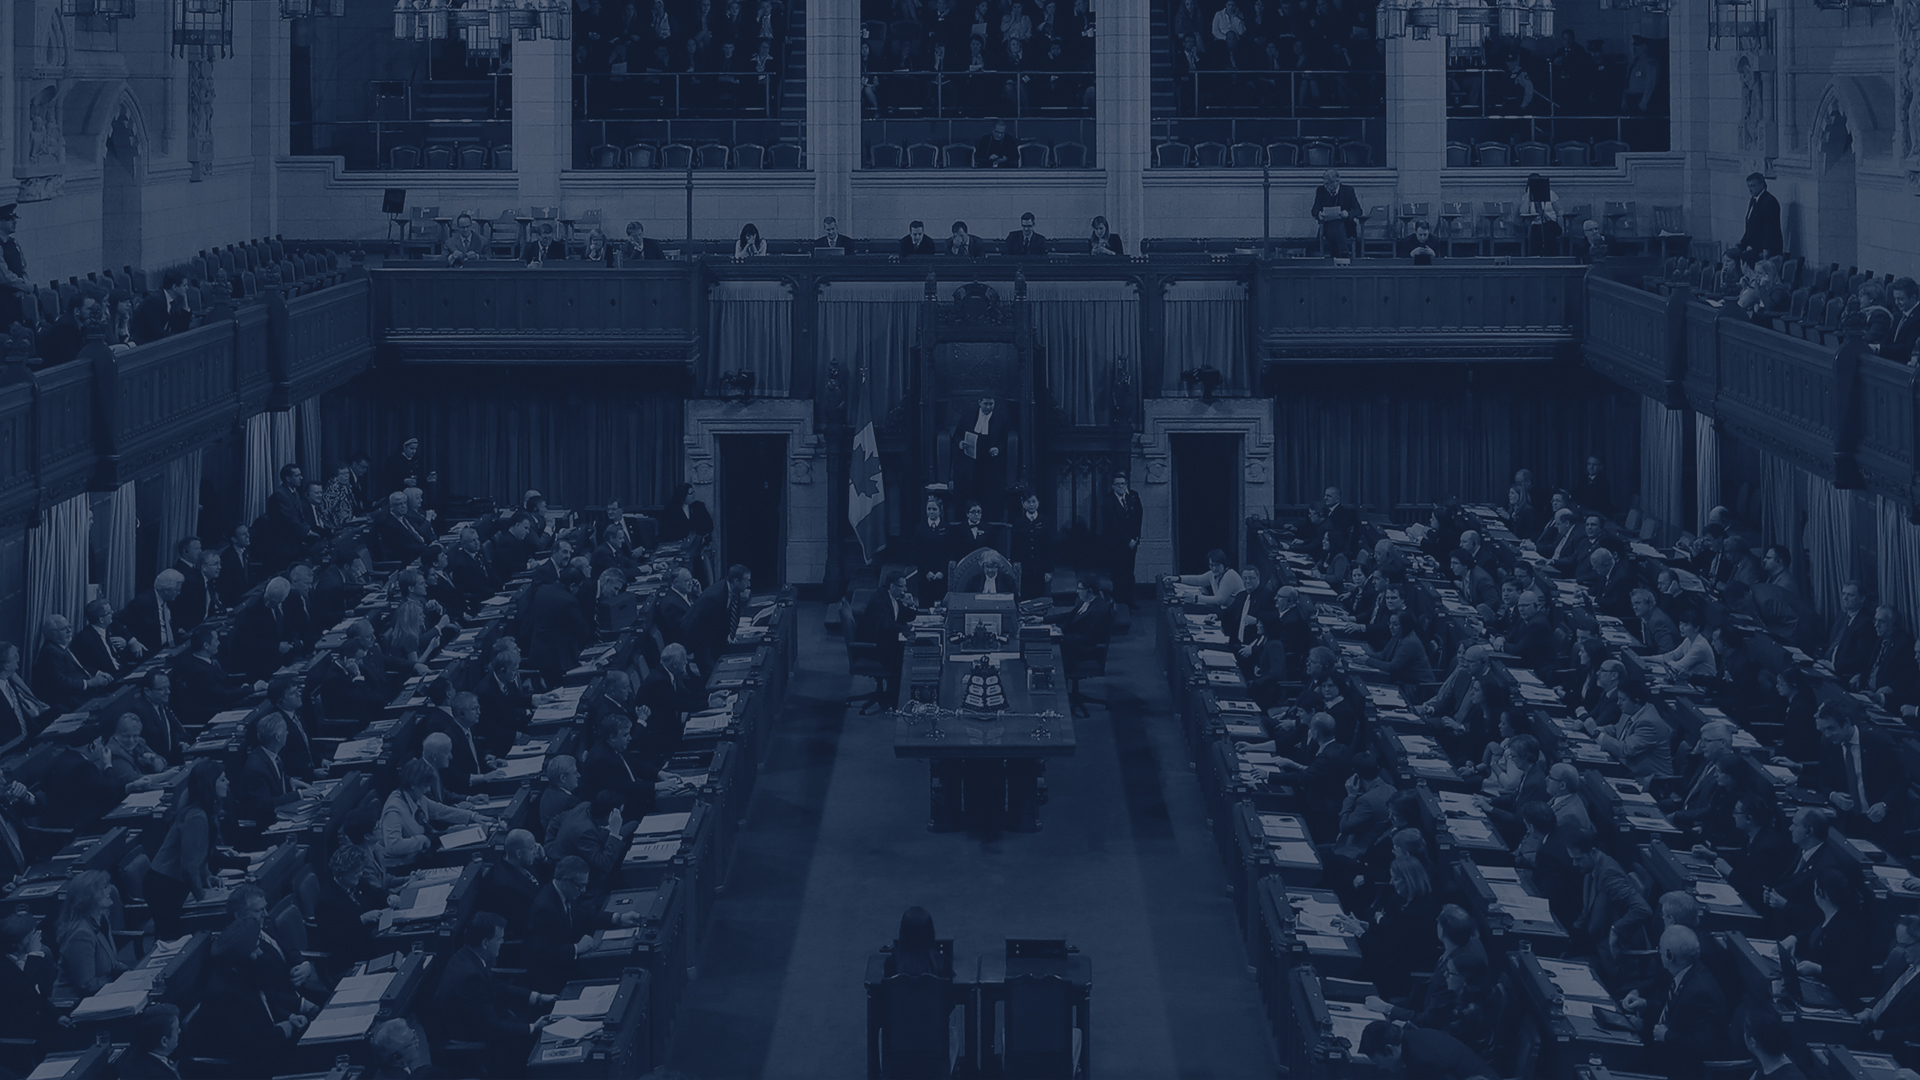 Attend Question Period